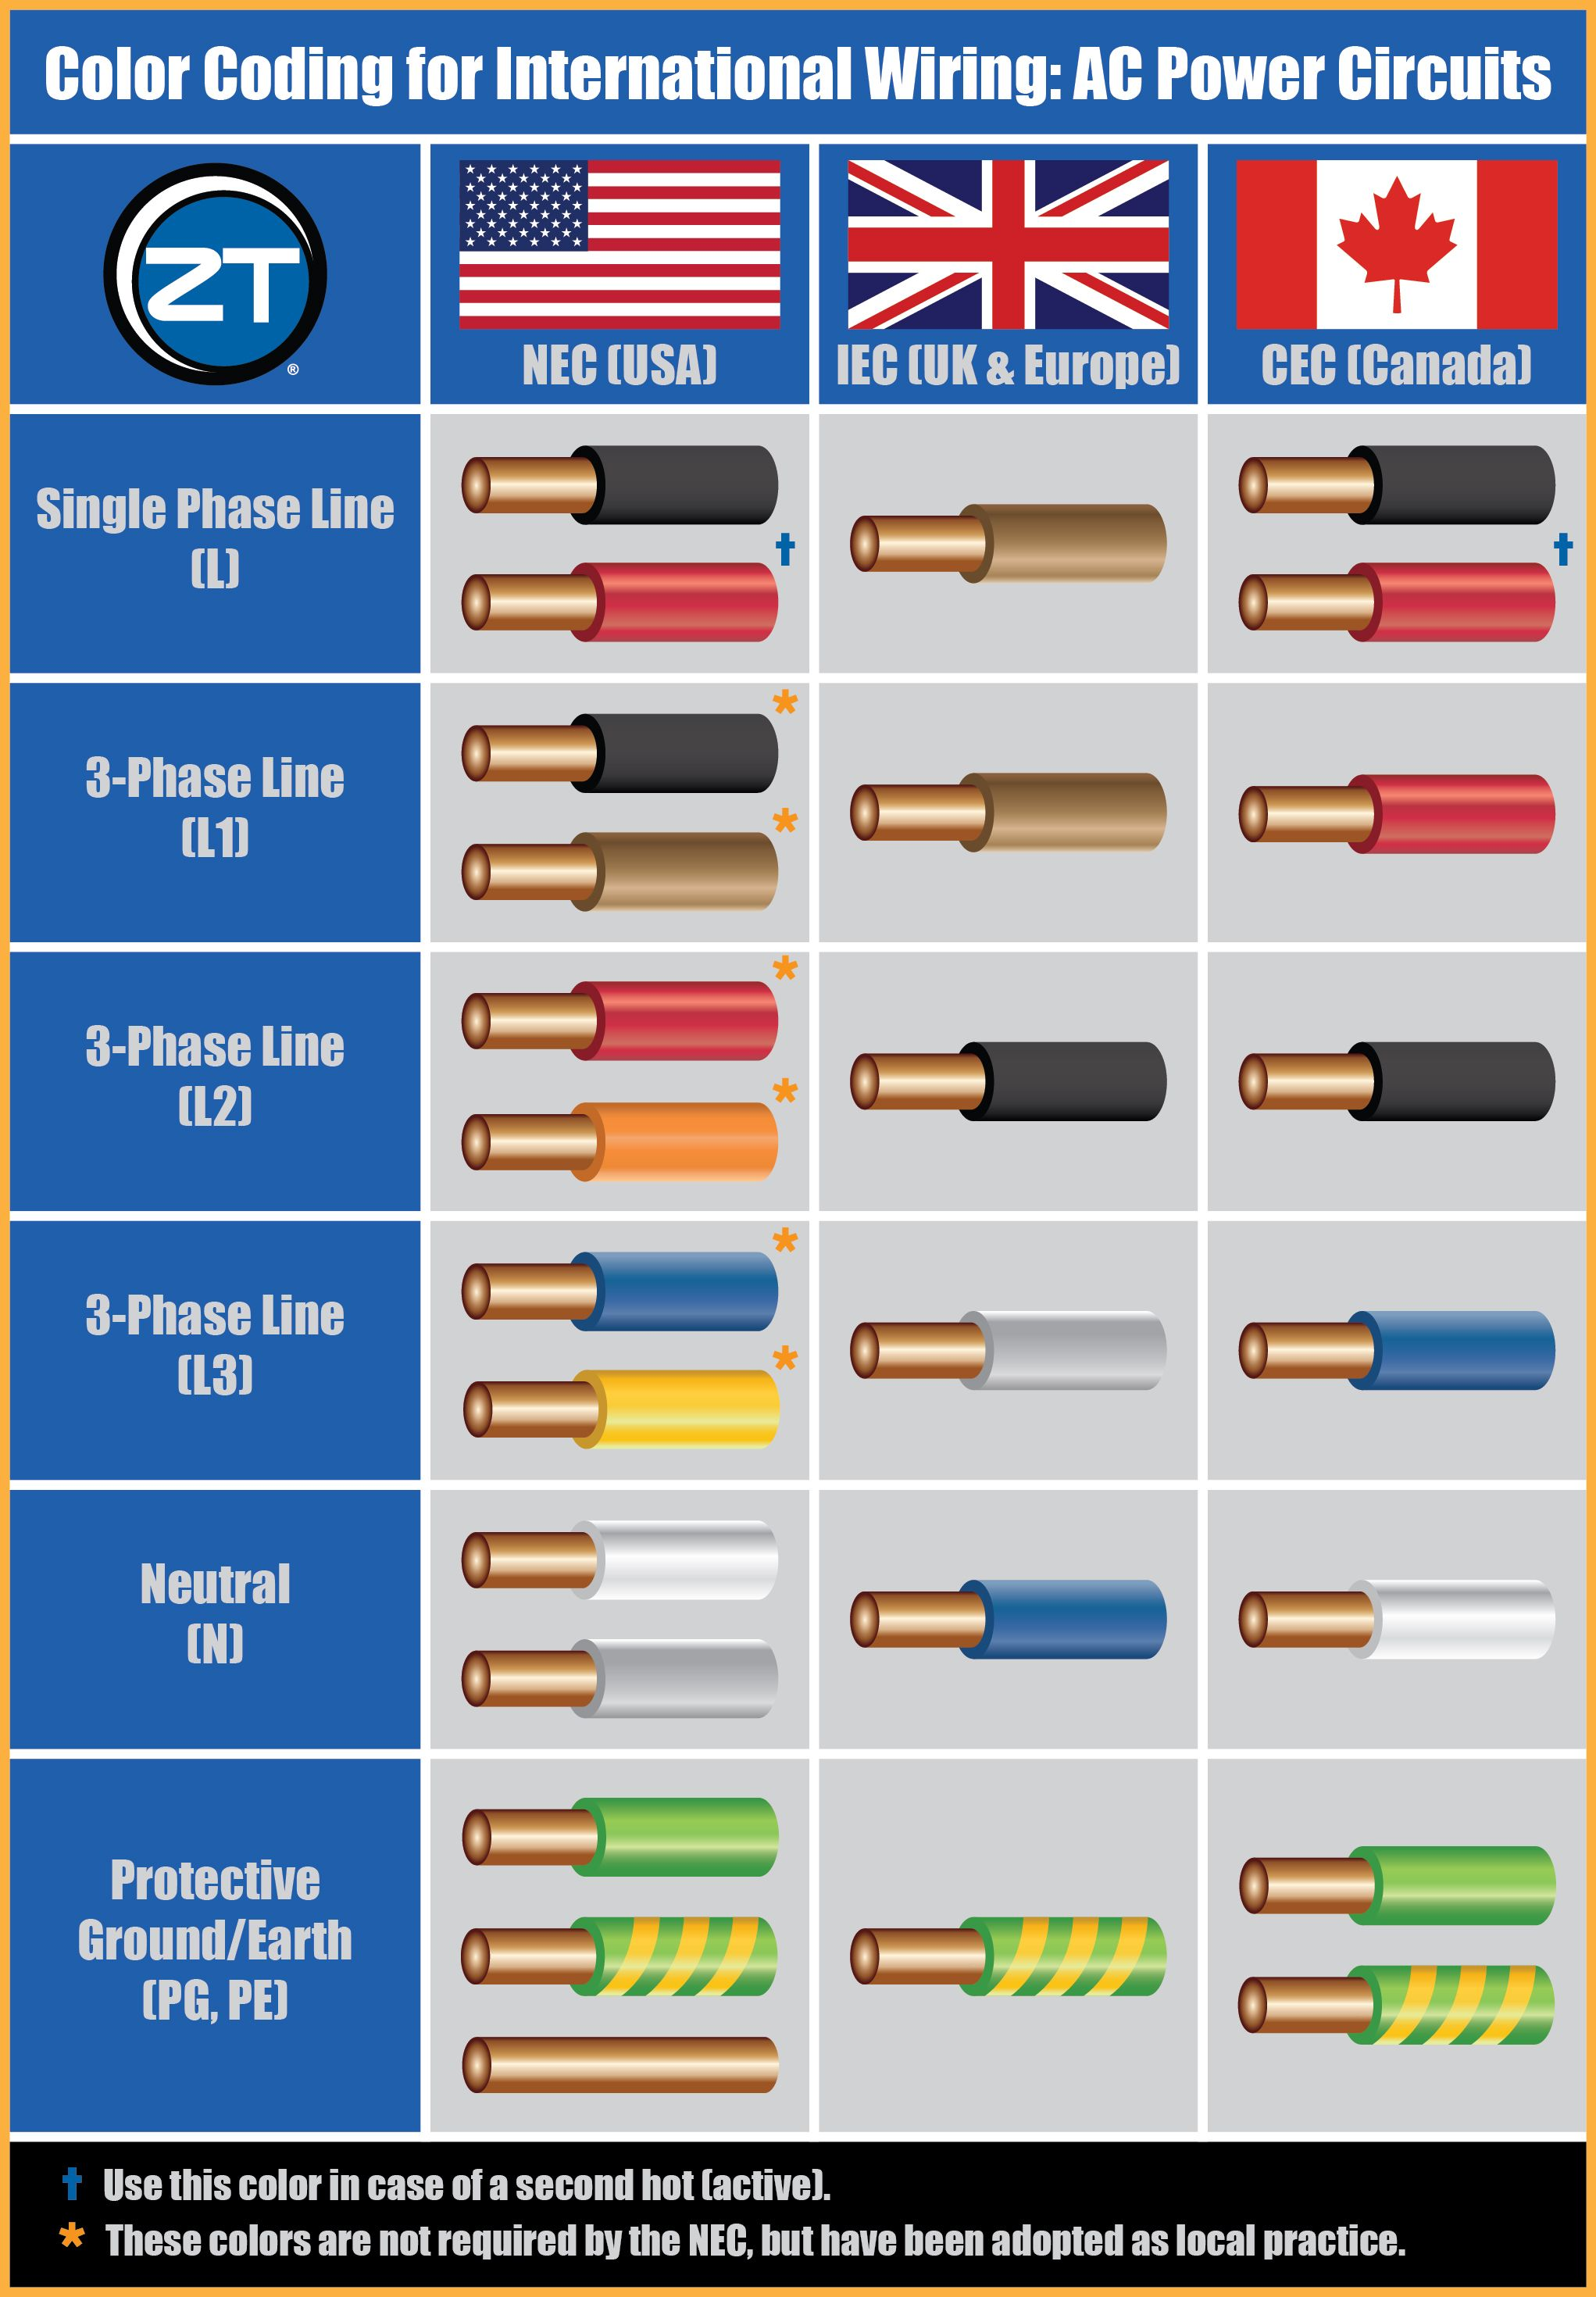 guide to color coding for international wiring international rh pinterest com wiring diagram color coding by jorge menchu electrical wiring color coding